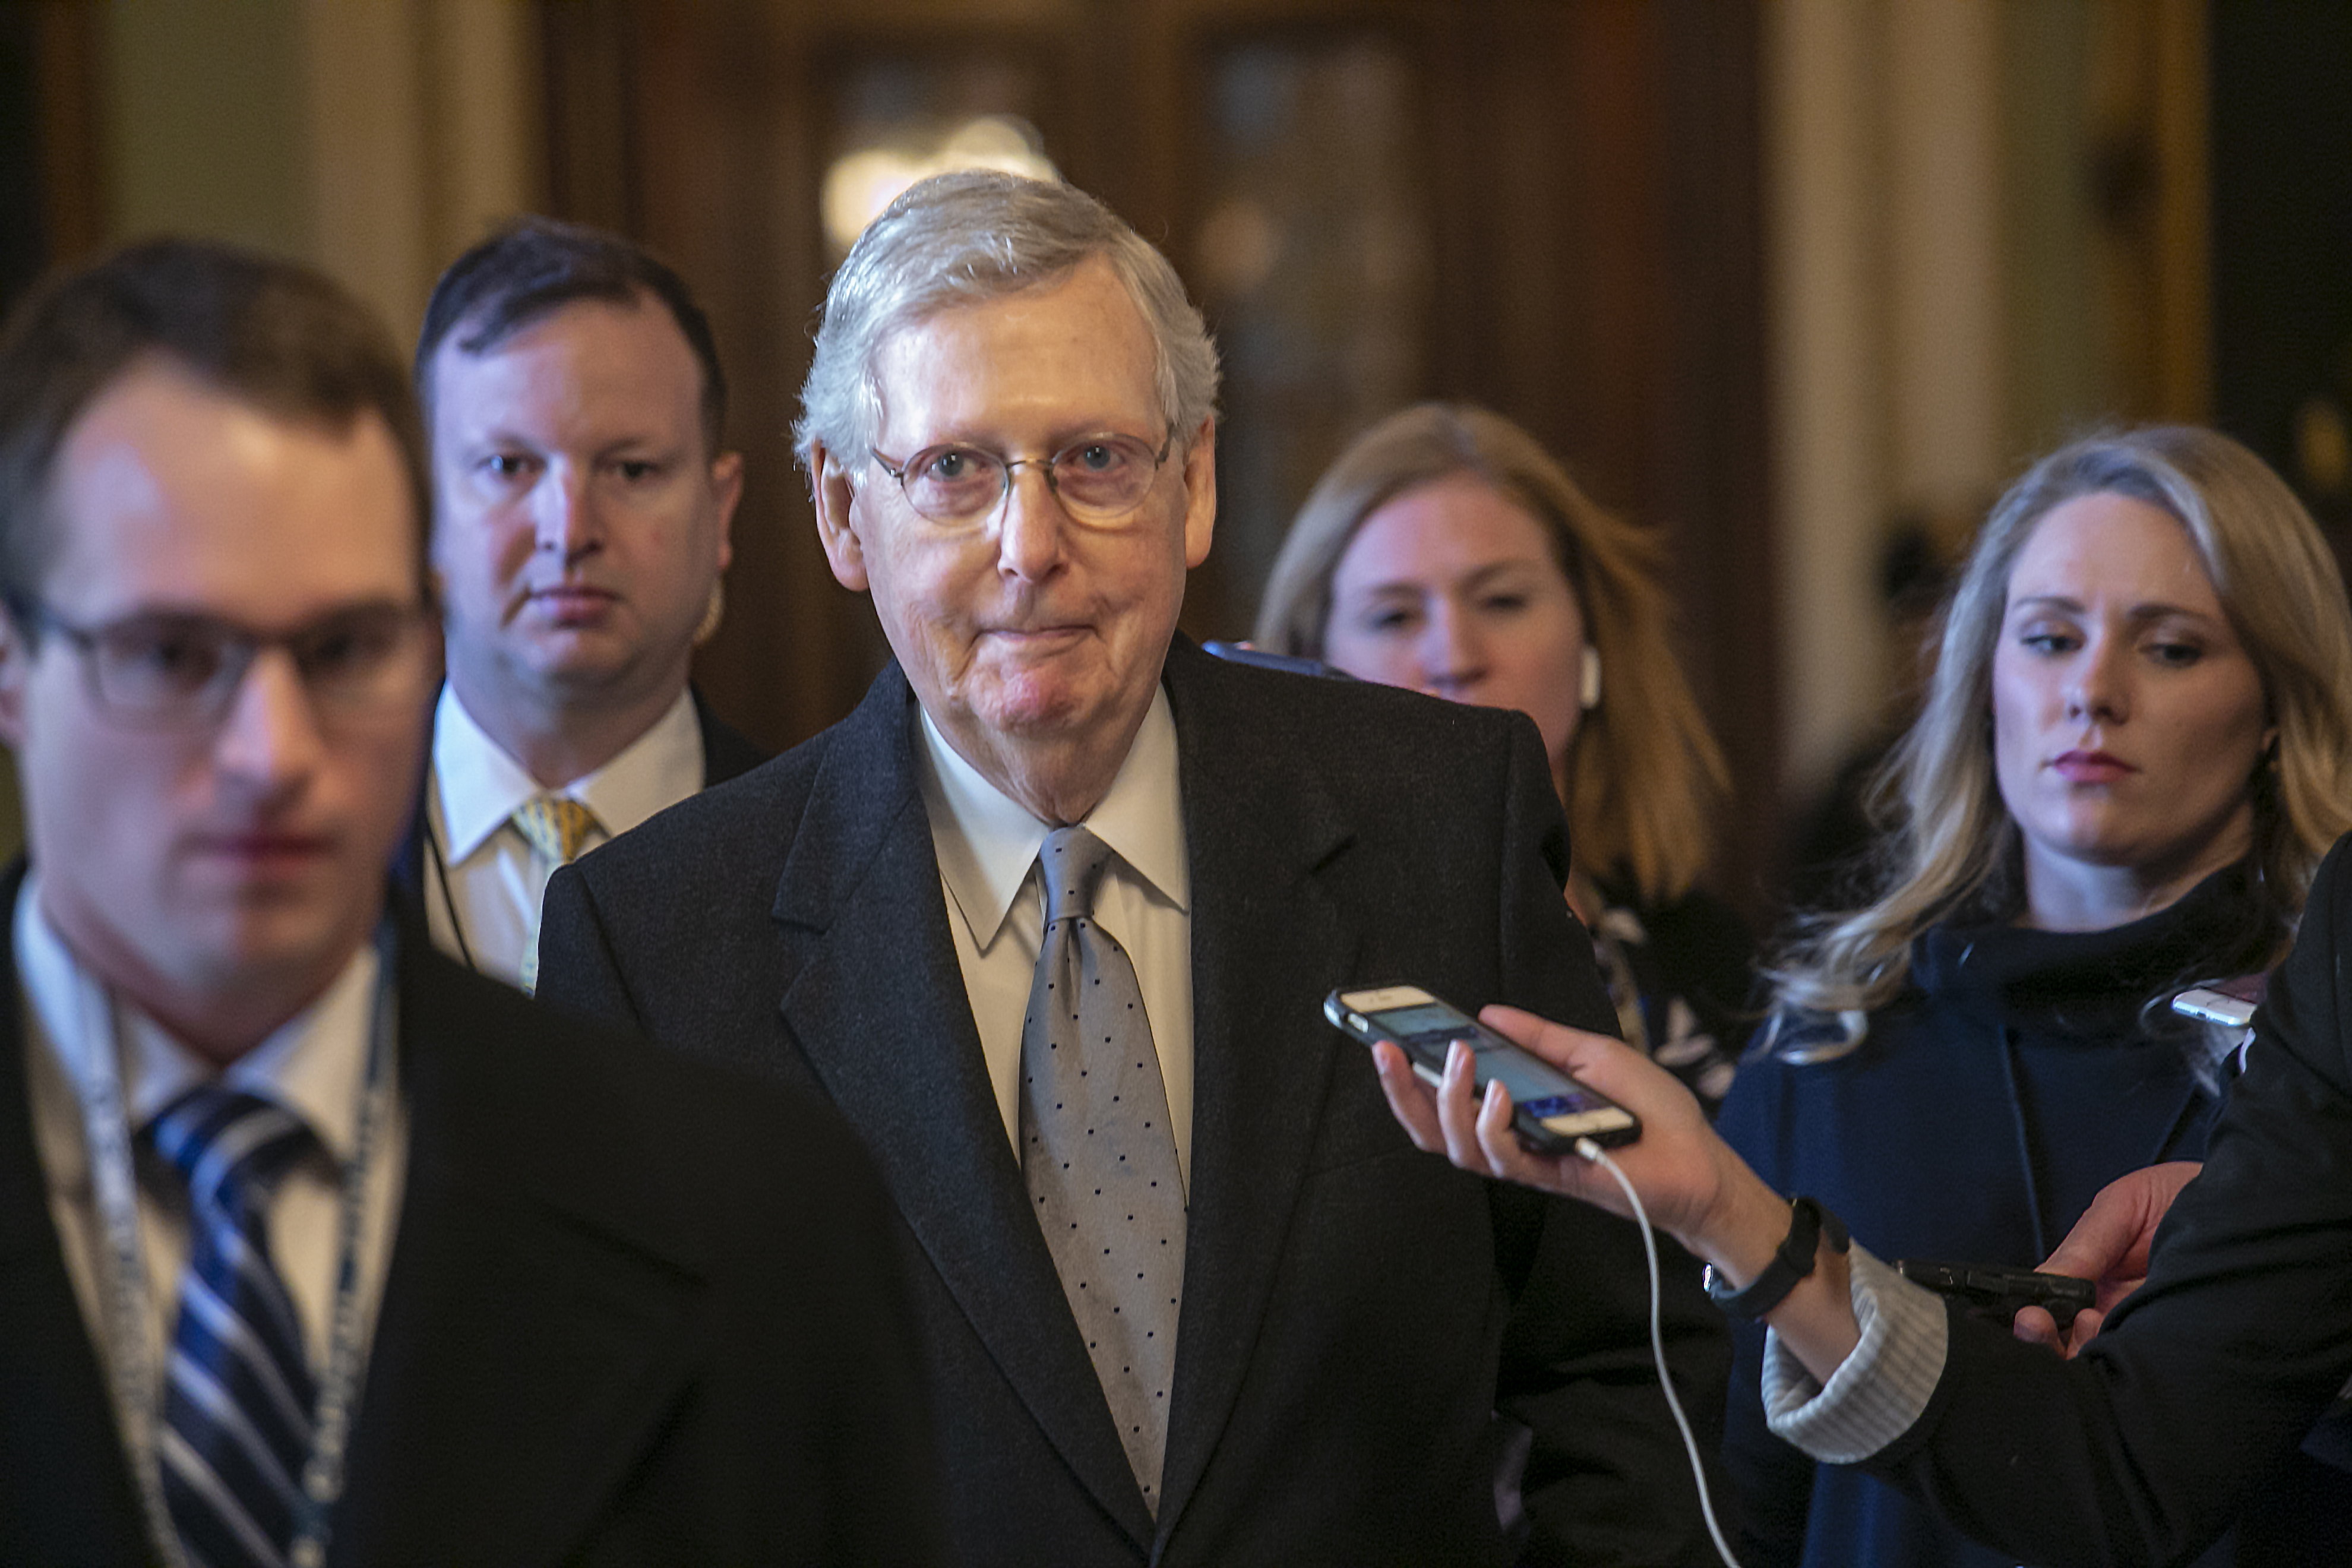 Senate Majority Leader Mitch McConnell, R-Ky., leaves the chamber after speaking about his plan to move a 1,300-page spending measure, which includes $5.7 billion to fund President Donald Trump's proposed wall along the U.S.-Mexico border, Jan. 22, 2